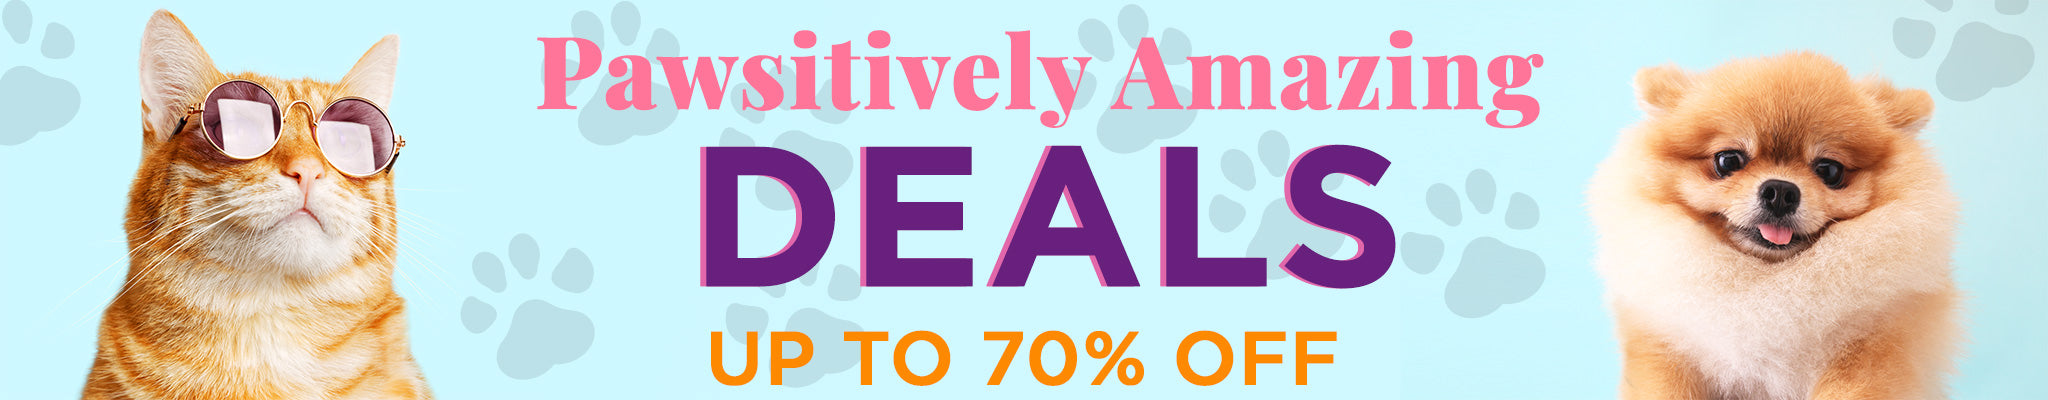 Pawsitively Amazing Deals